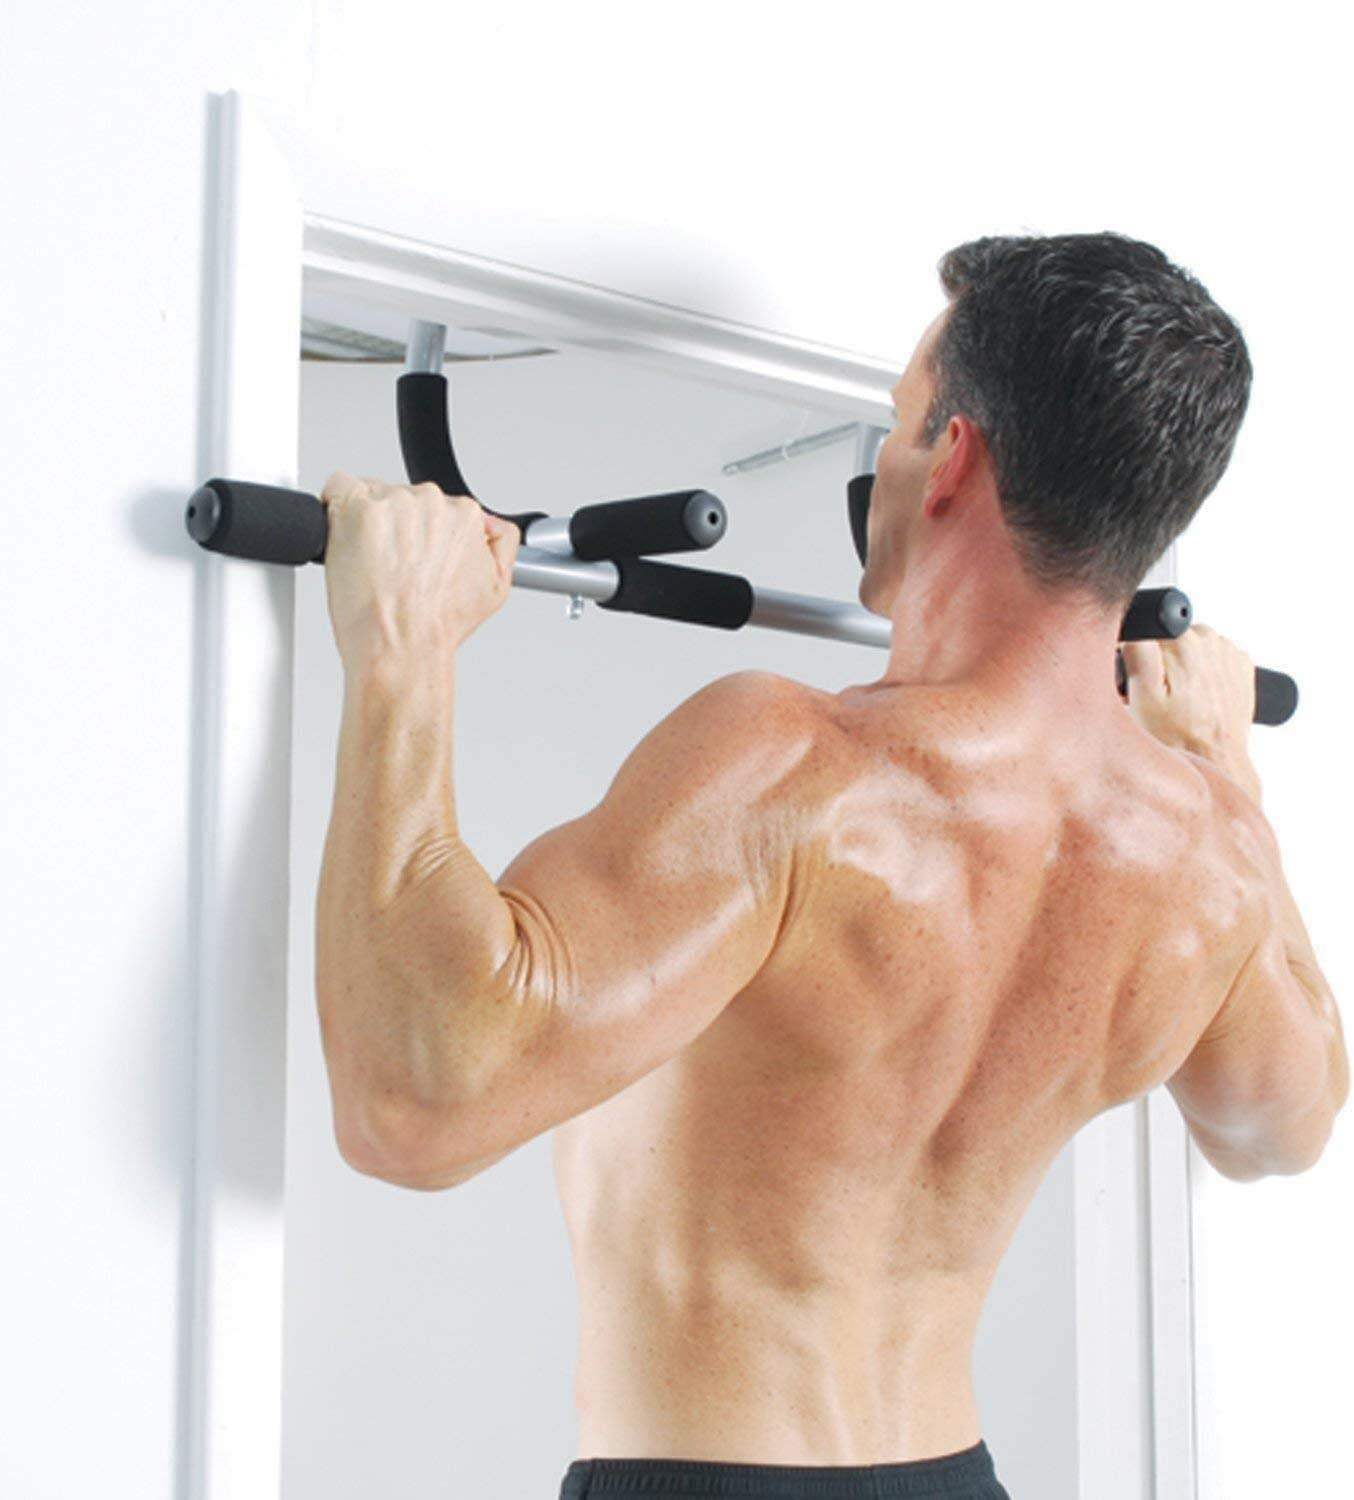 Jaina Chin Pull Up Bar Exercise Heavy Duty Doorway Fitness Home Gym Upper Body Workout